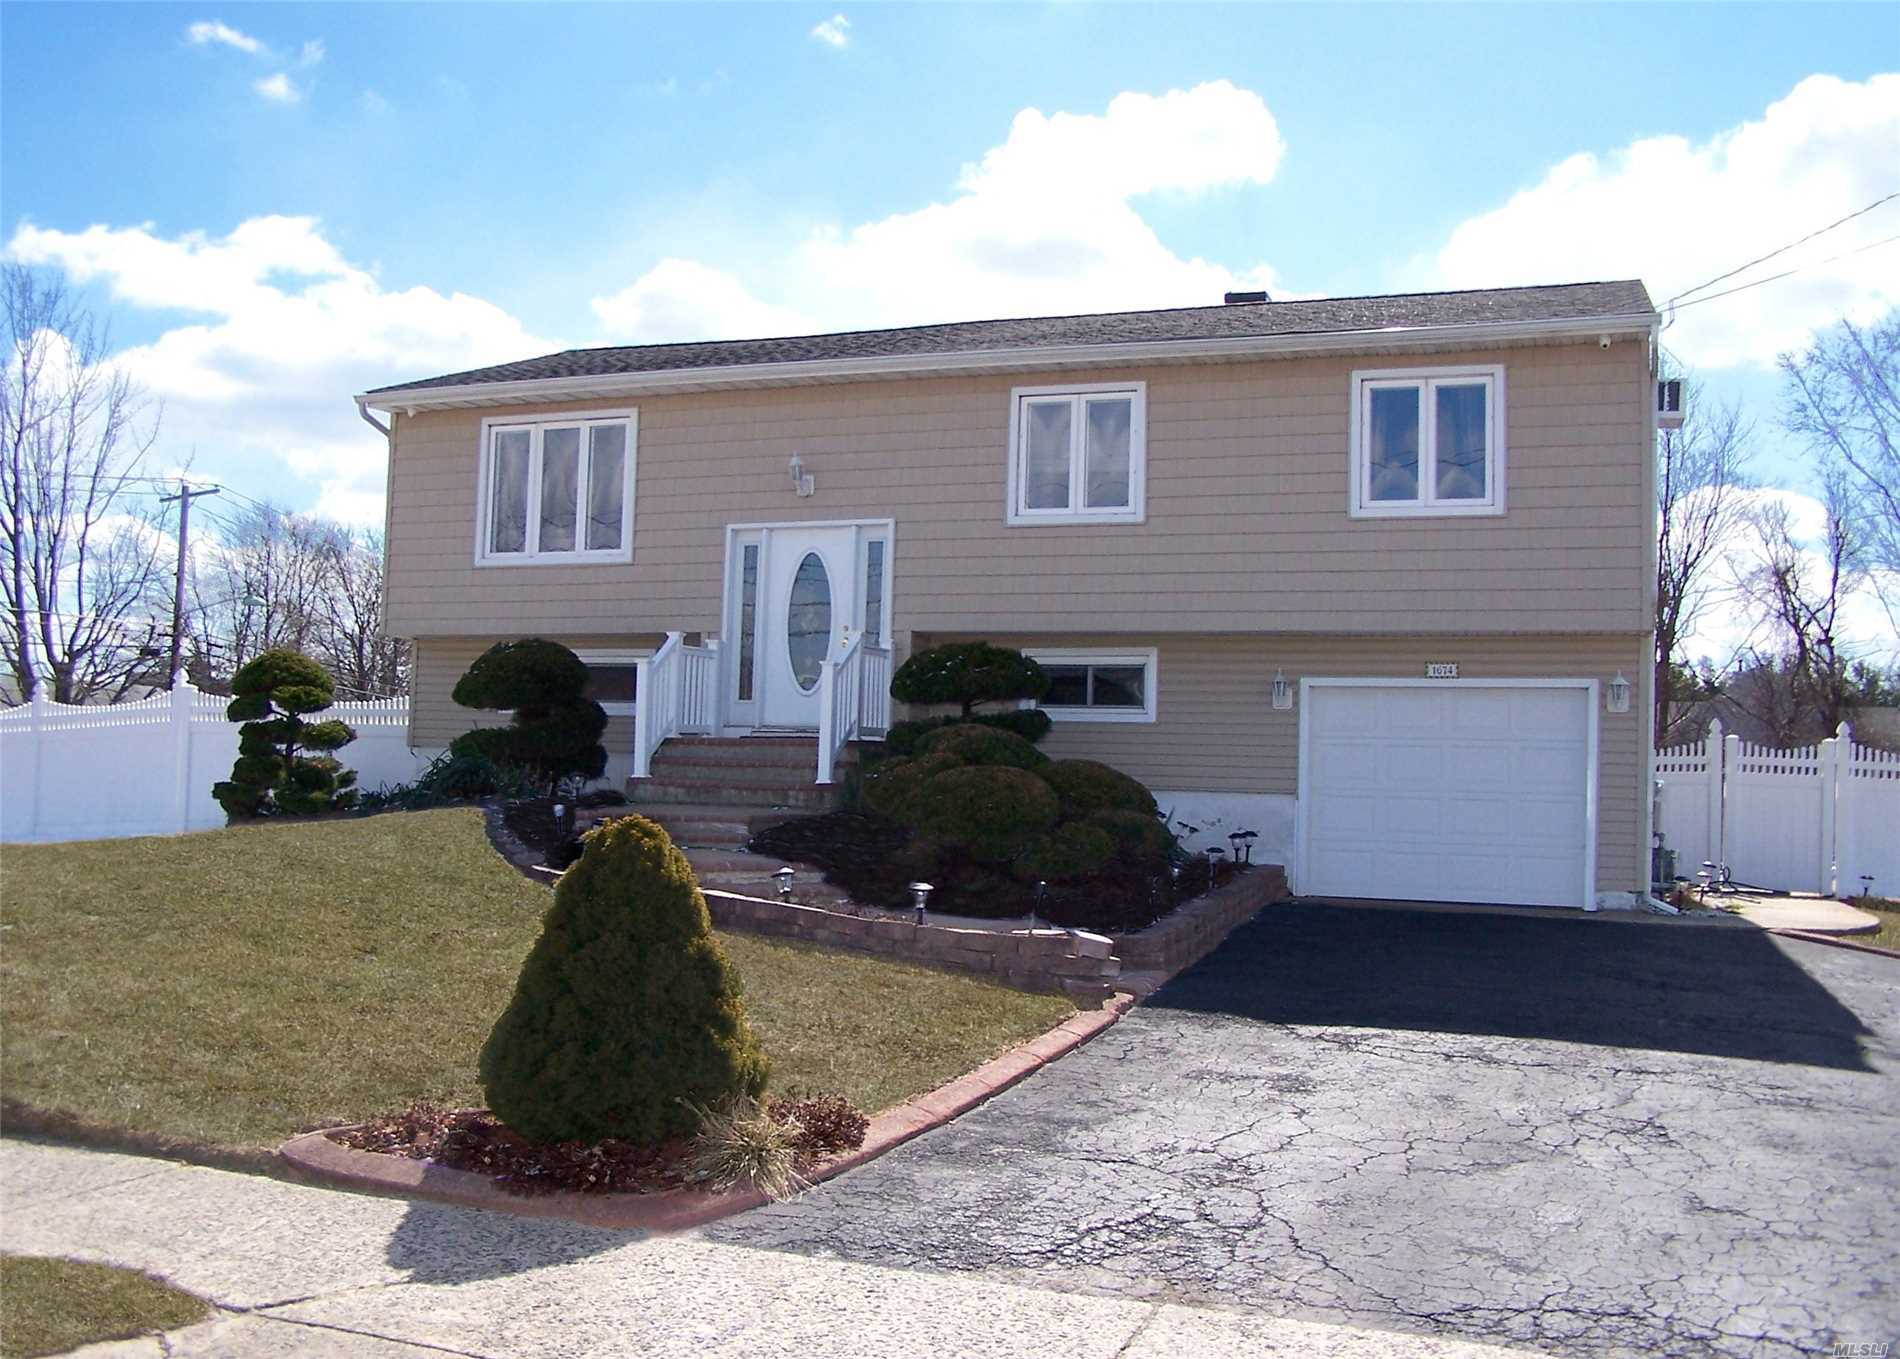 Clean Well Maintained/Updated Hi Ranch Set Up For Accessory Apartment W/Proper Permits. Features 4 Bedrooms, 2 Full Baths, Living Rm/Dining Rm, 2 New Kitchens W/Granite, Updated Bathrooms, New Roof, Siding, Hardwood Floors Throughout, Fenced In Yard W/17X35 Ig Pool W/New Liner. Priced To Sell In Sachem Schools. Shows Easily By Appointment.